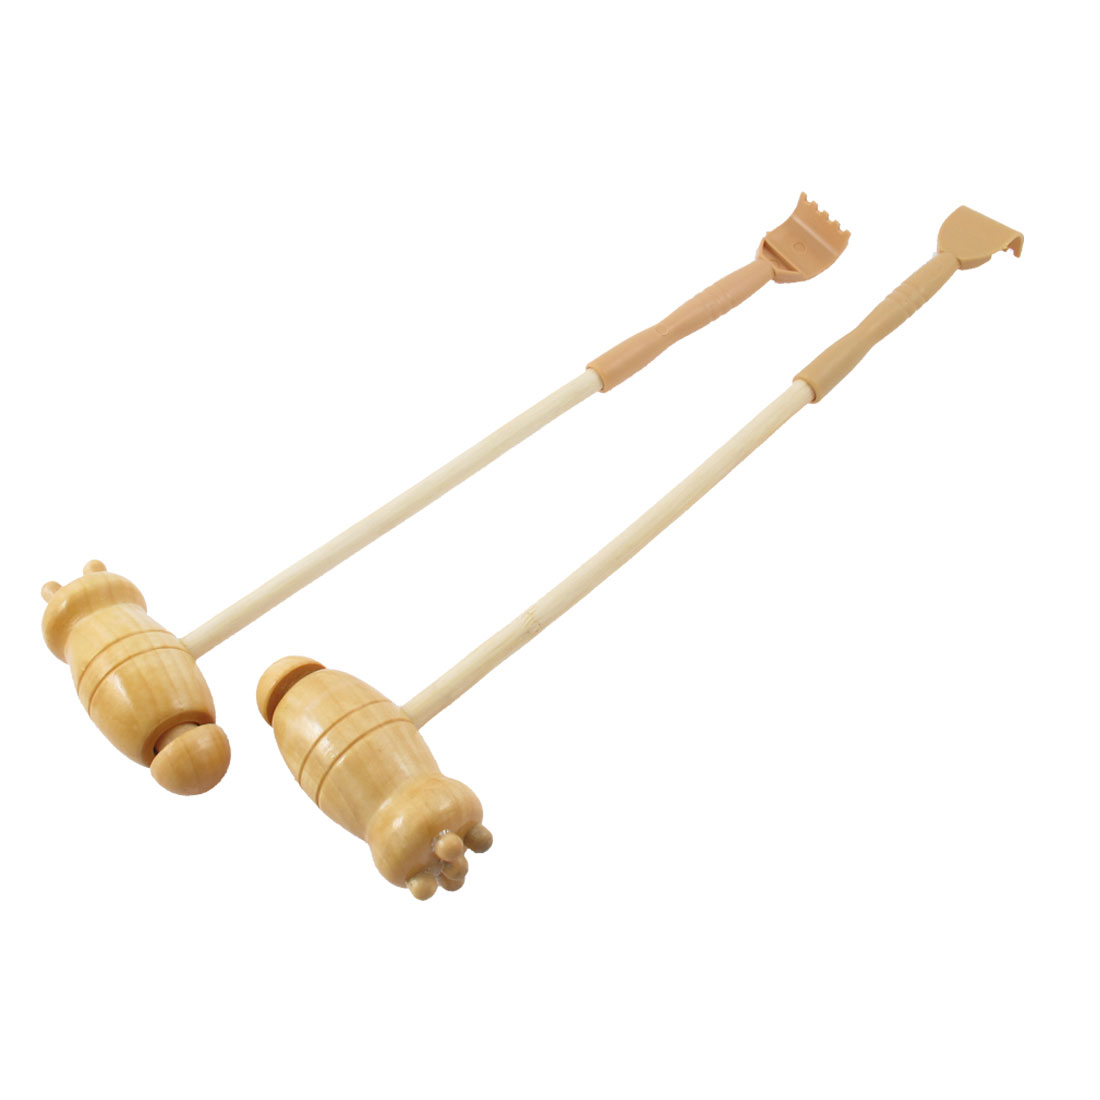 Plastic Wooden Double Head Scratcher Body Knock Massage Hammer 12'' Length 2 Pcs